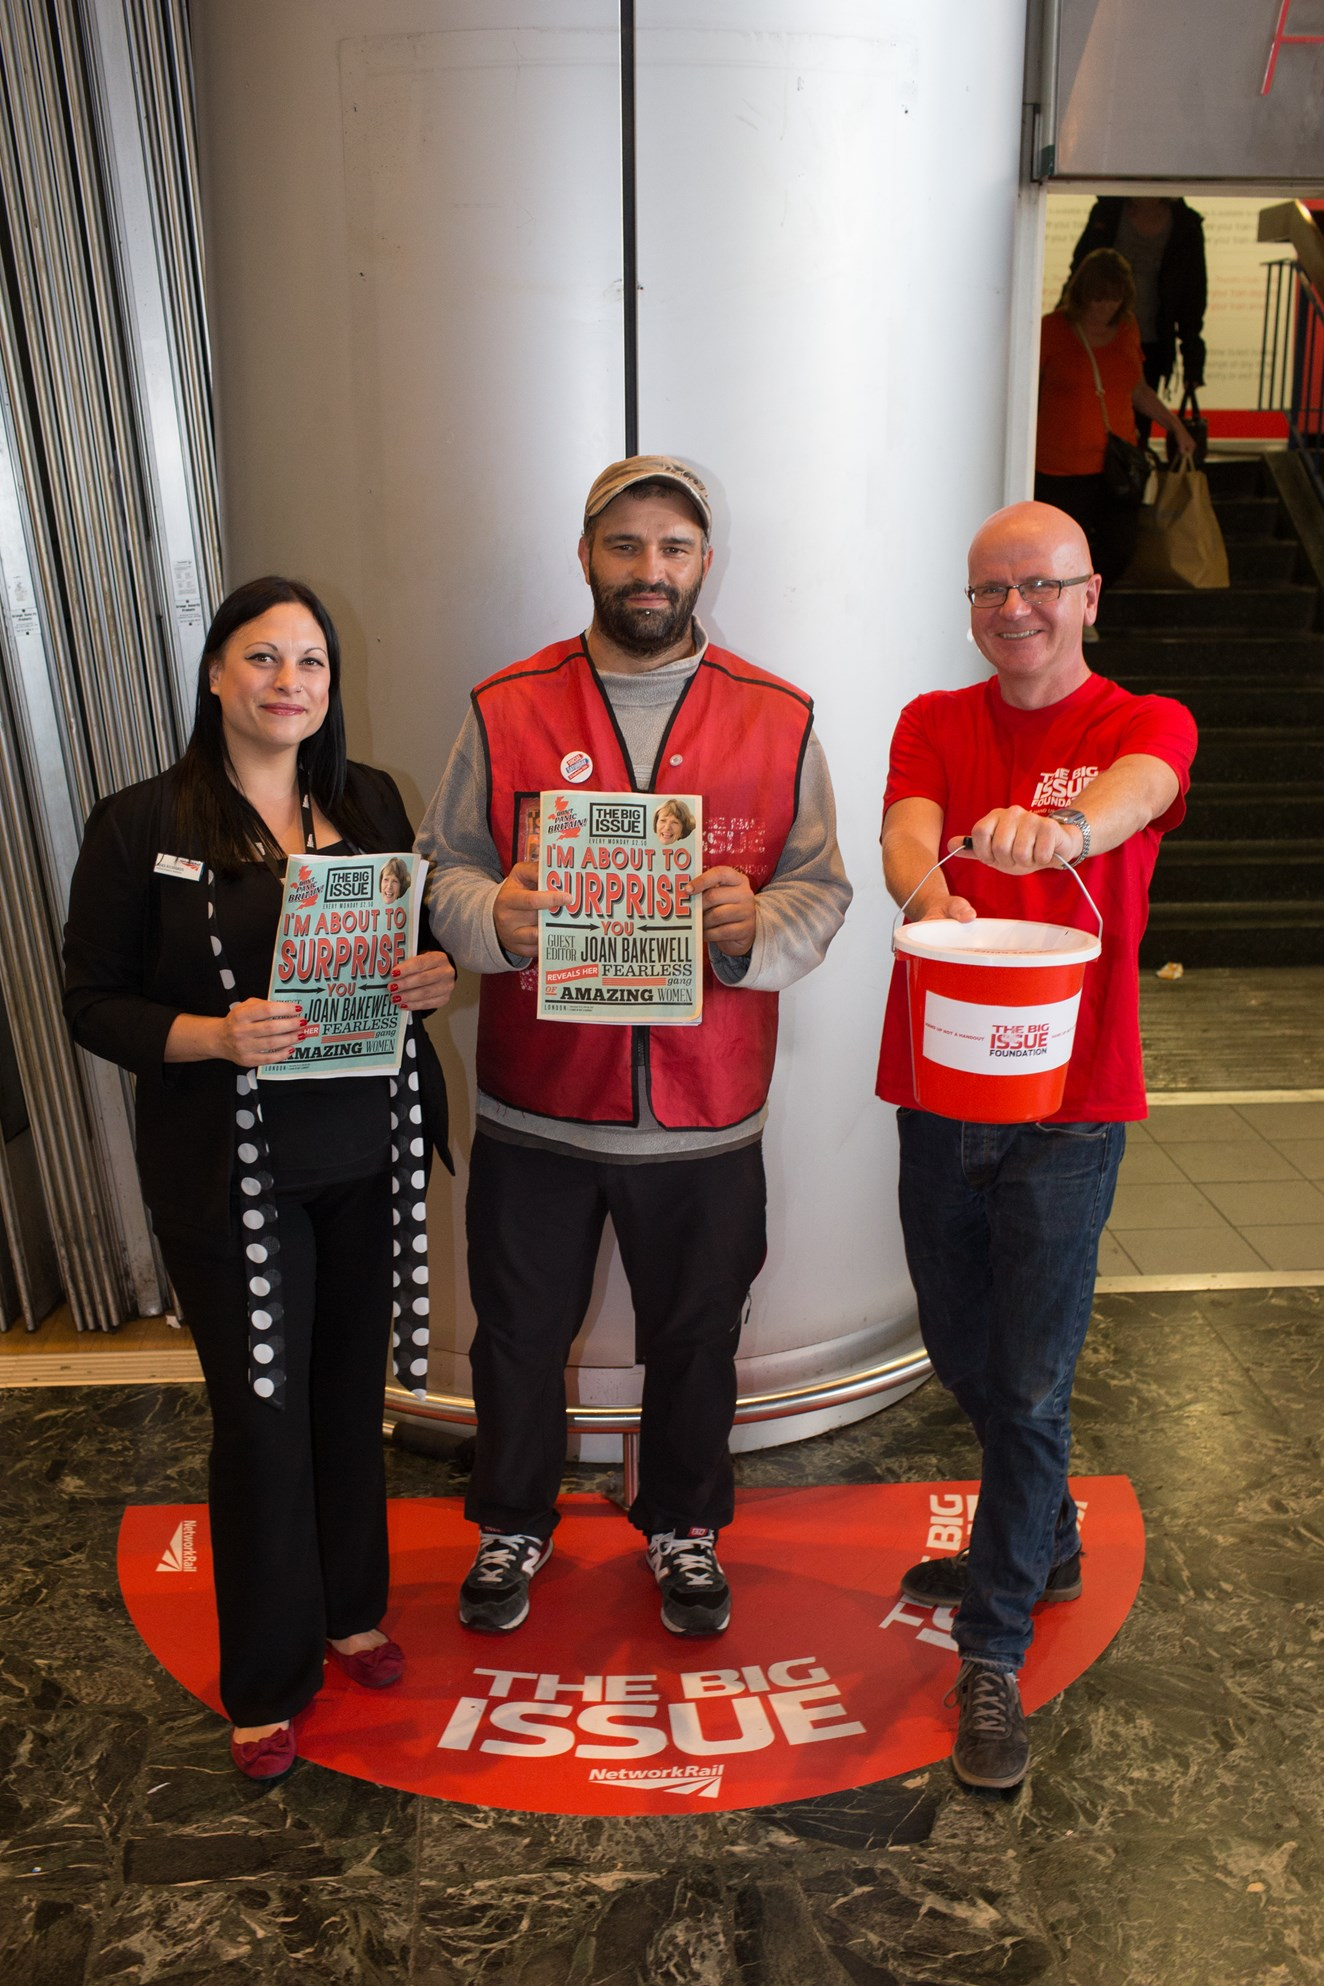 Station first as The Big Issue finds a home at Euston: Big Issue vendor pitch